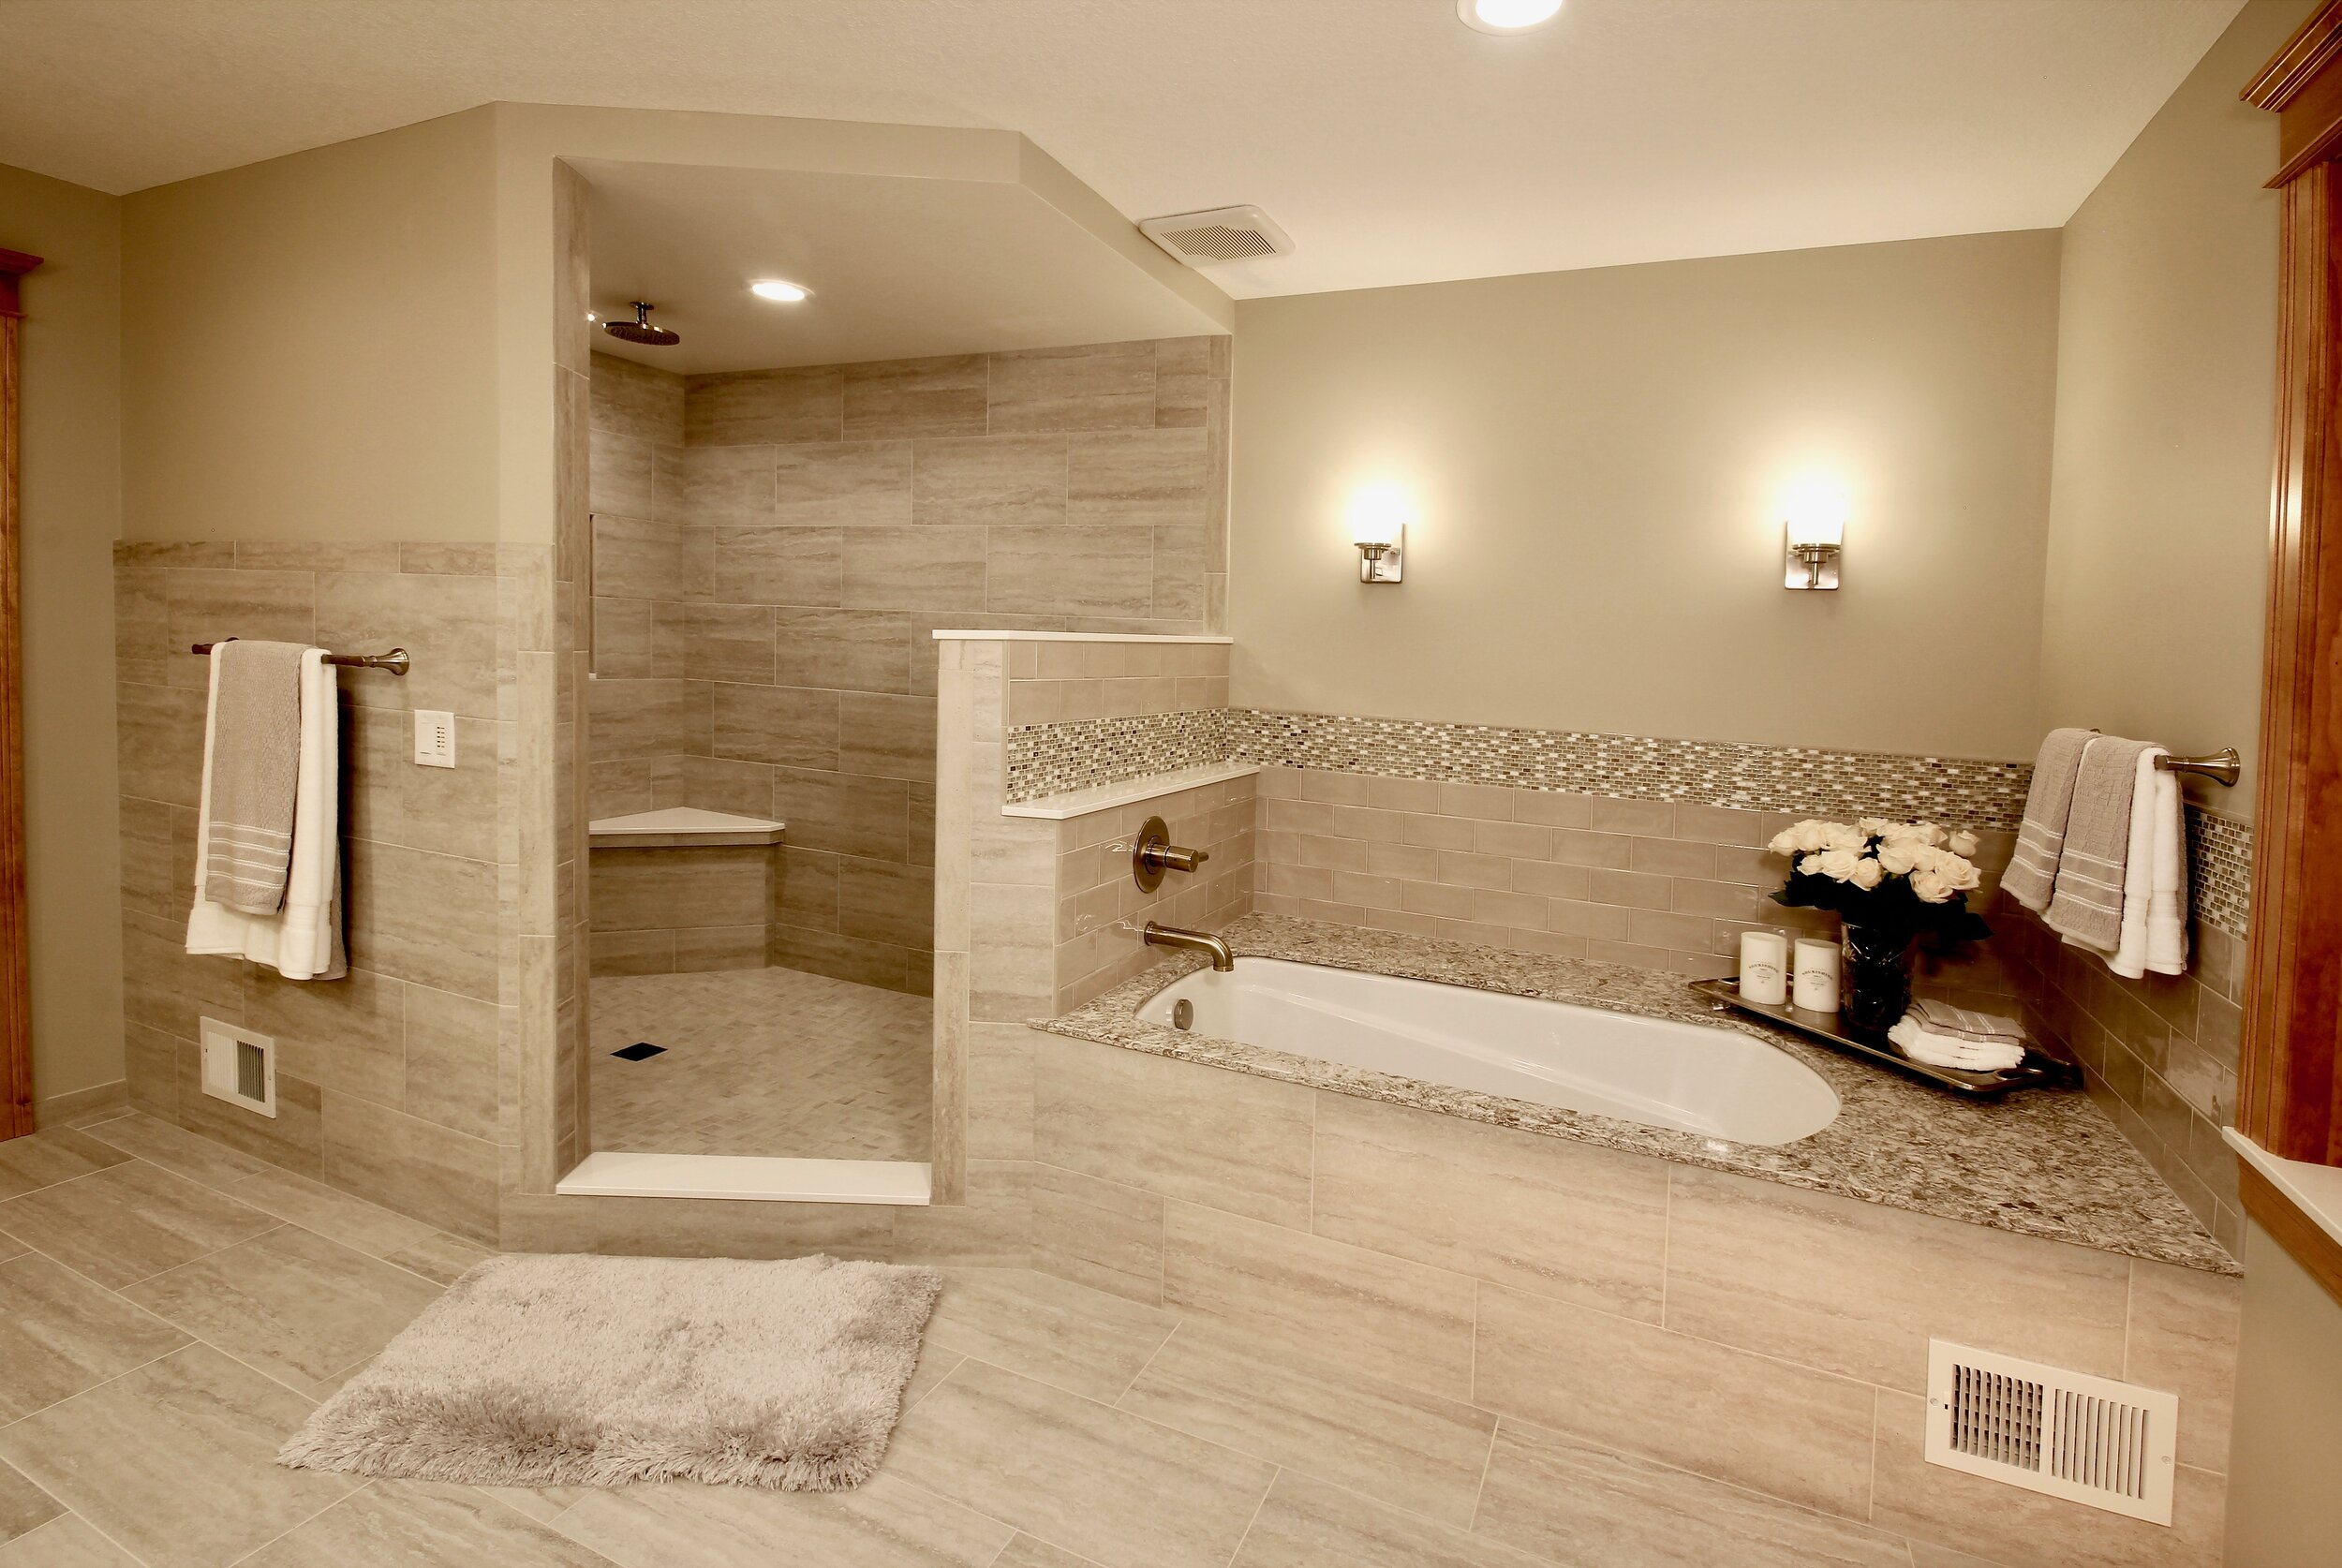 Open shower and soaker tub